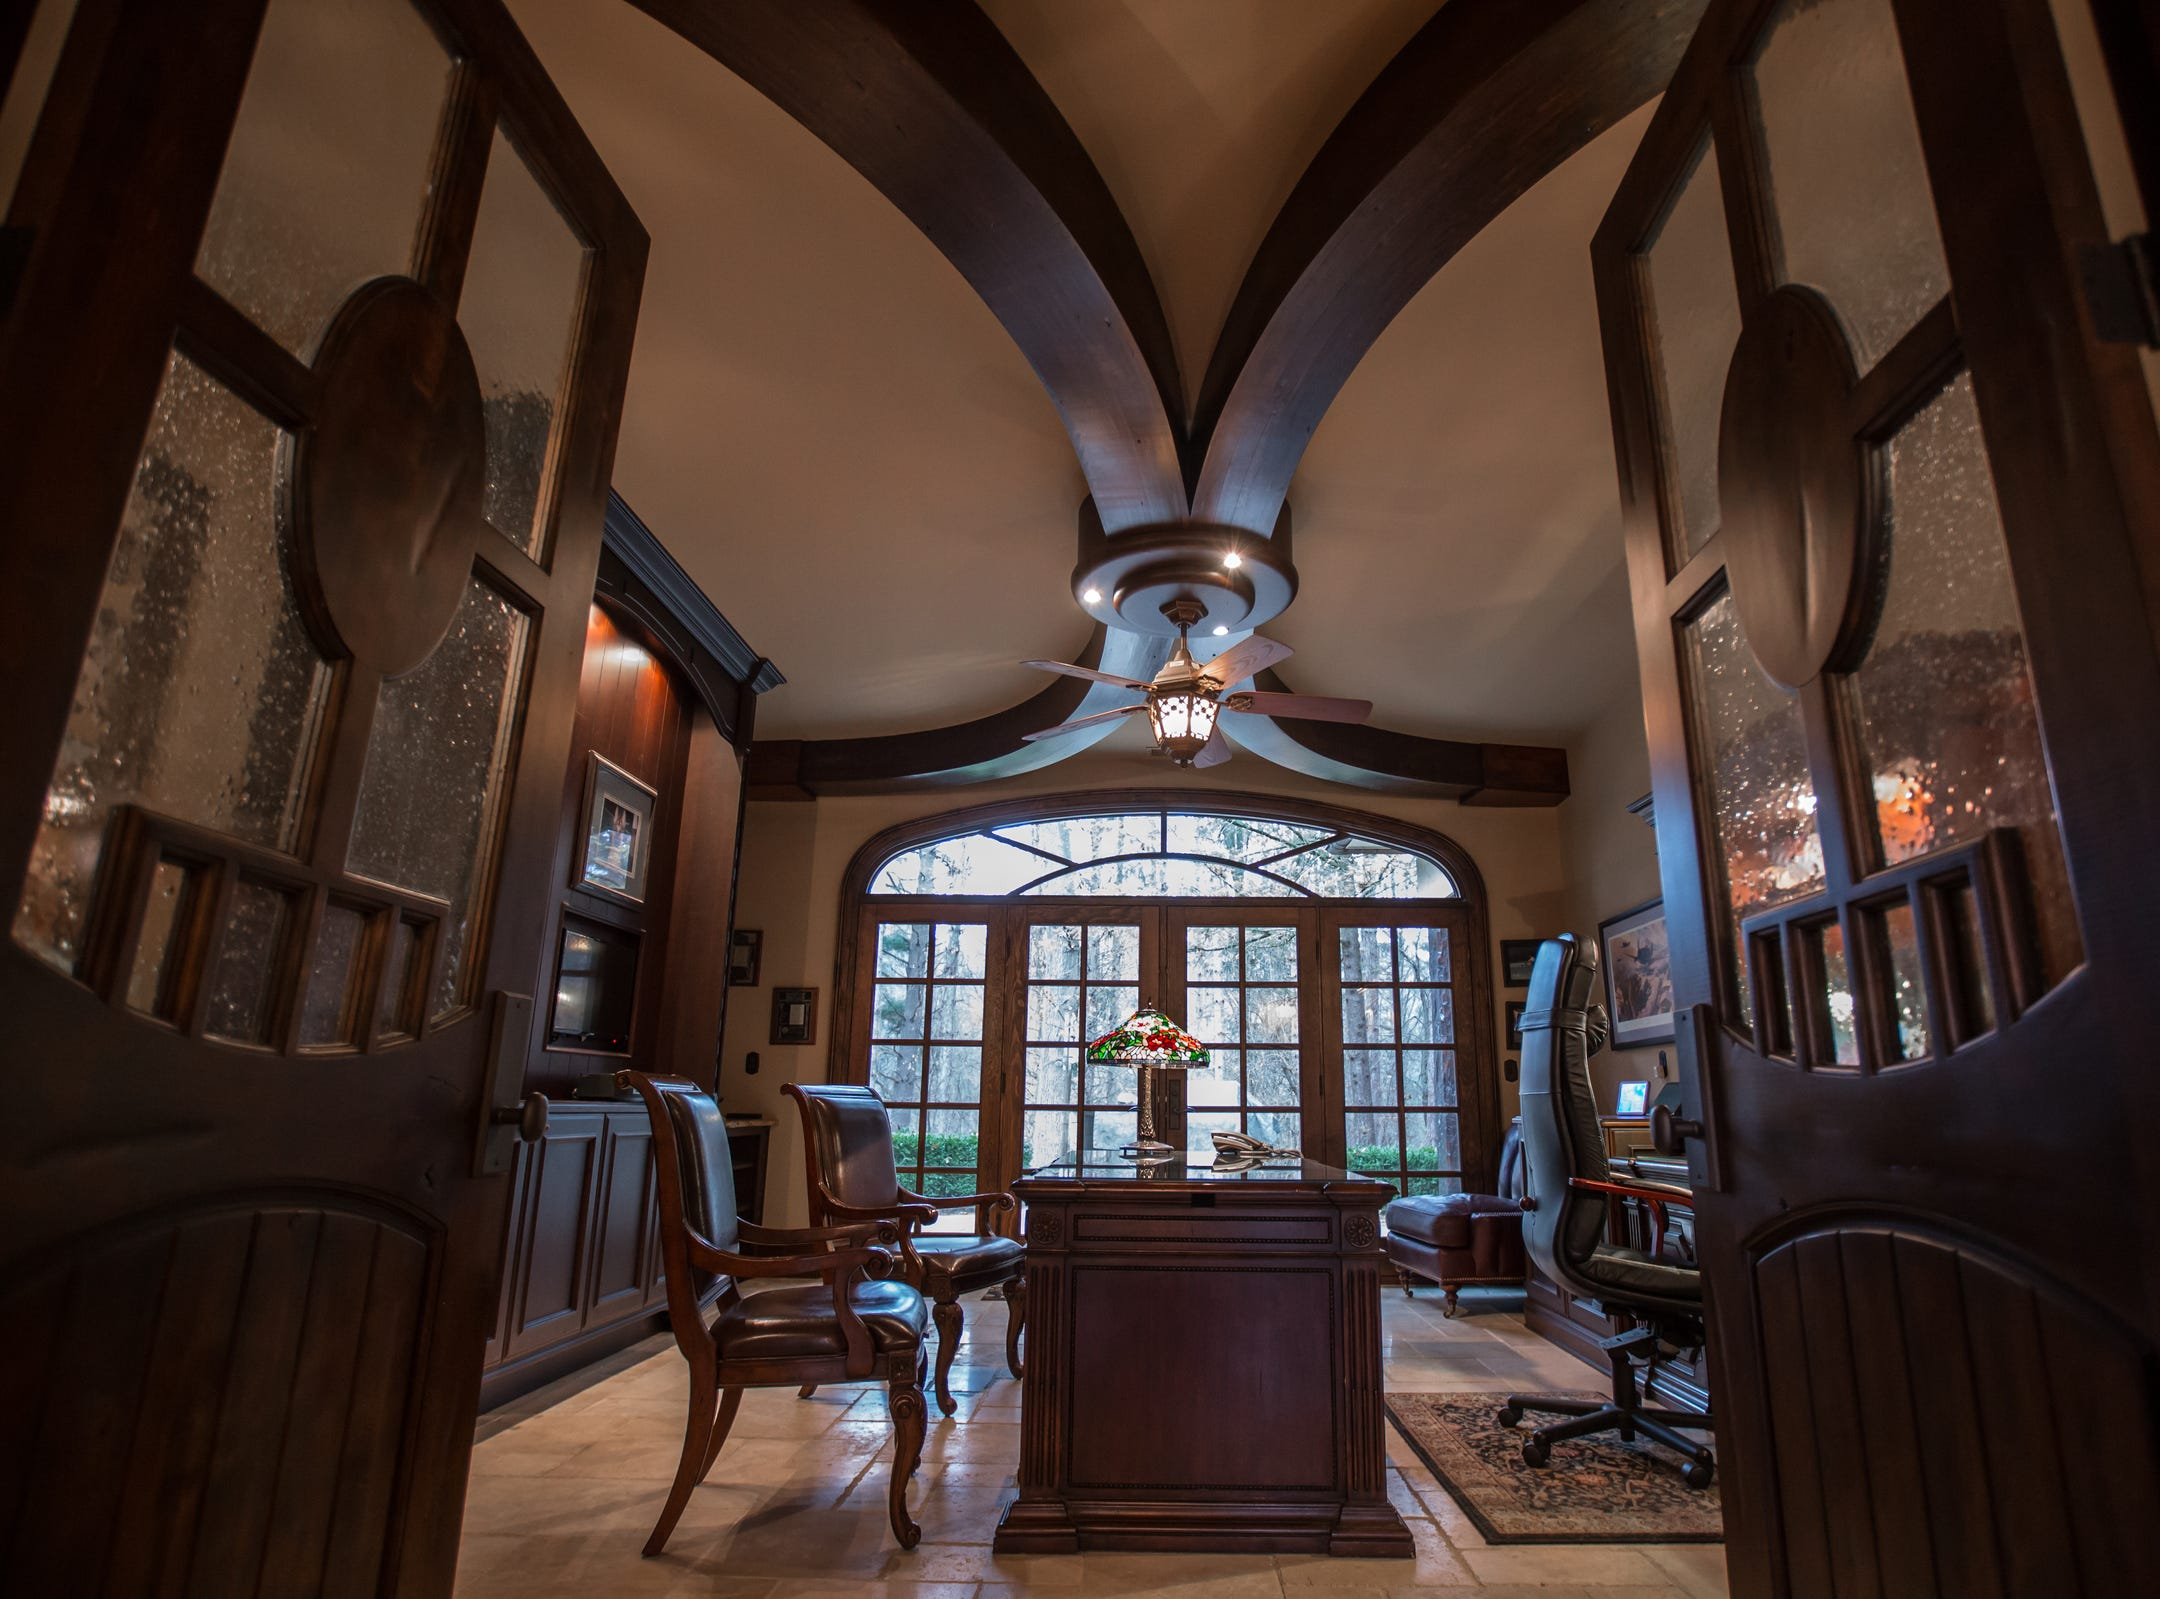 Unique radius-curved beams in the ceiling, carved alder doors and beautiful French doors are seen in the home envisioned after the Biltmore Estate designed by Alex Bogarts and built by an award winning builder as his own personal residence.